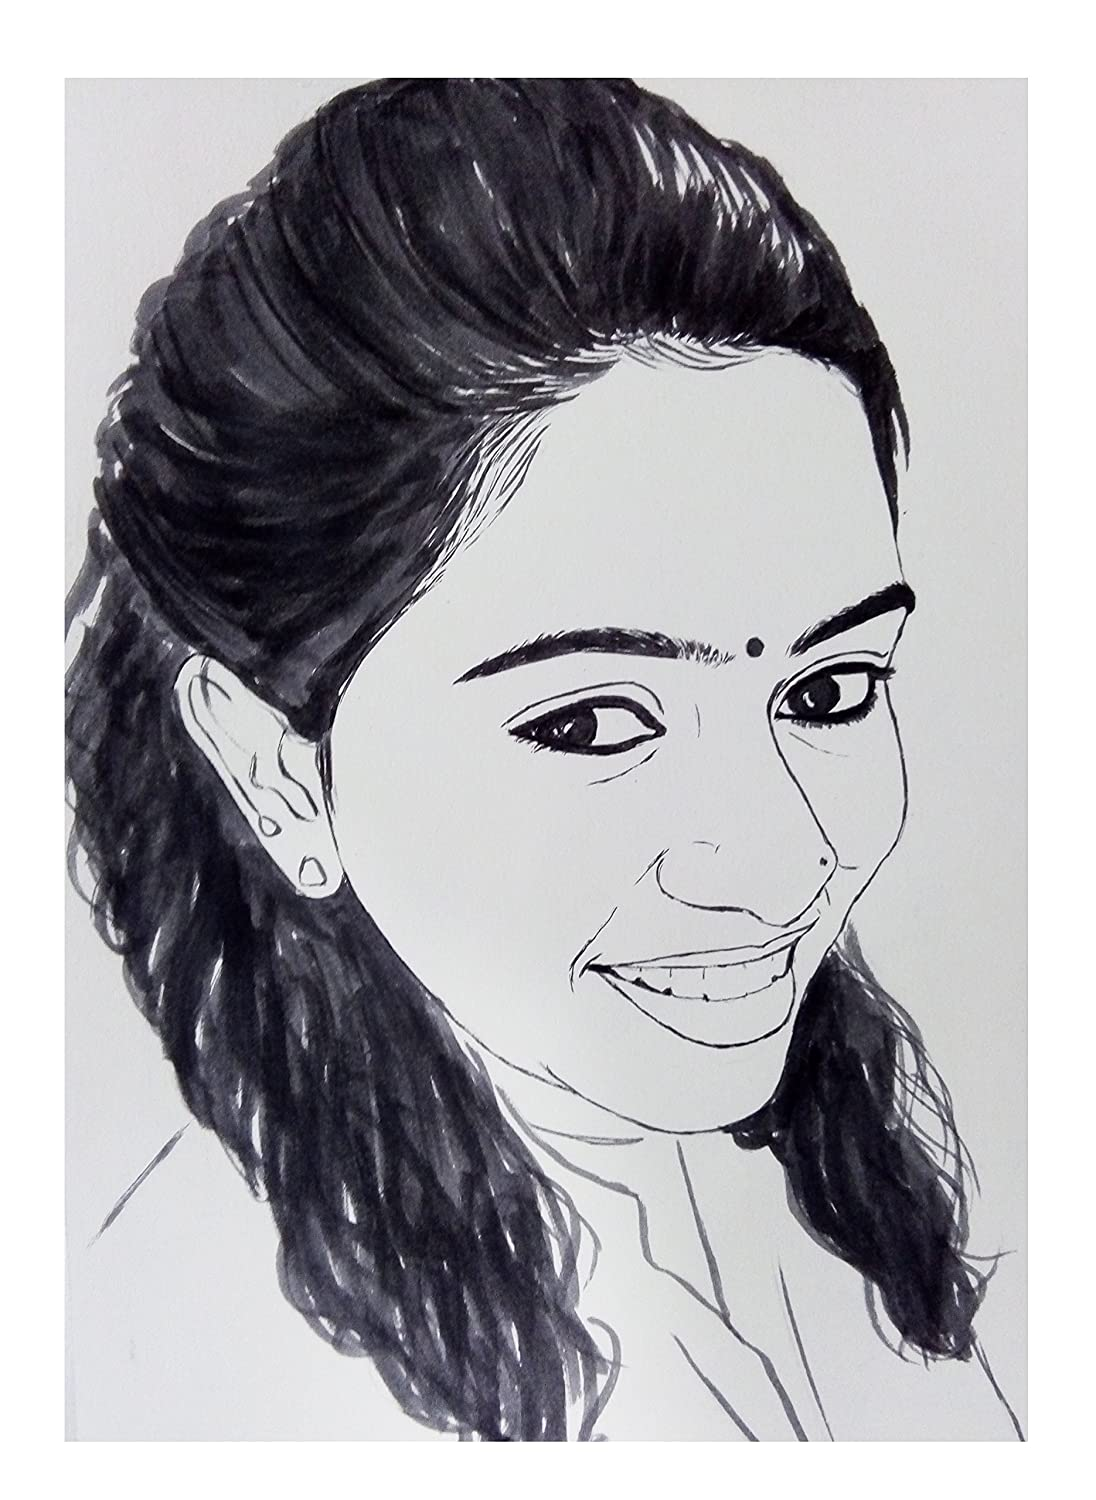 Big indian arts portrait caricature drawing hand made black and white sketch amazon in home kitchen